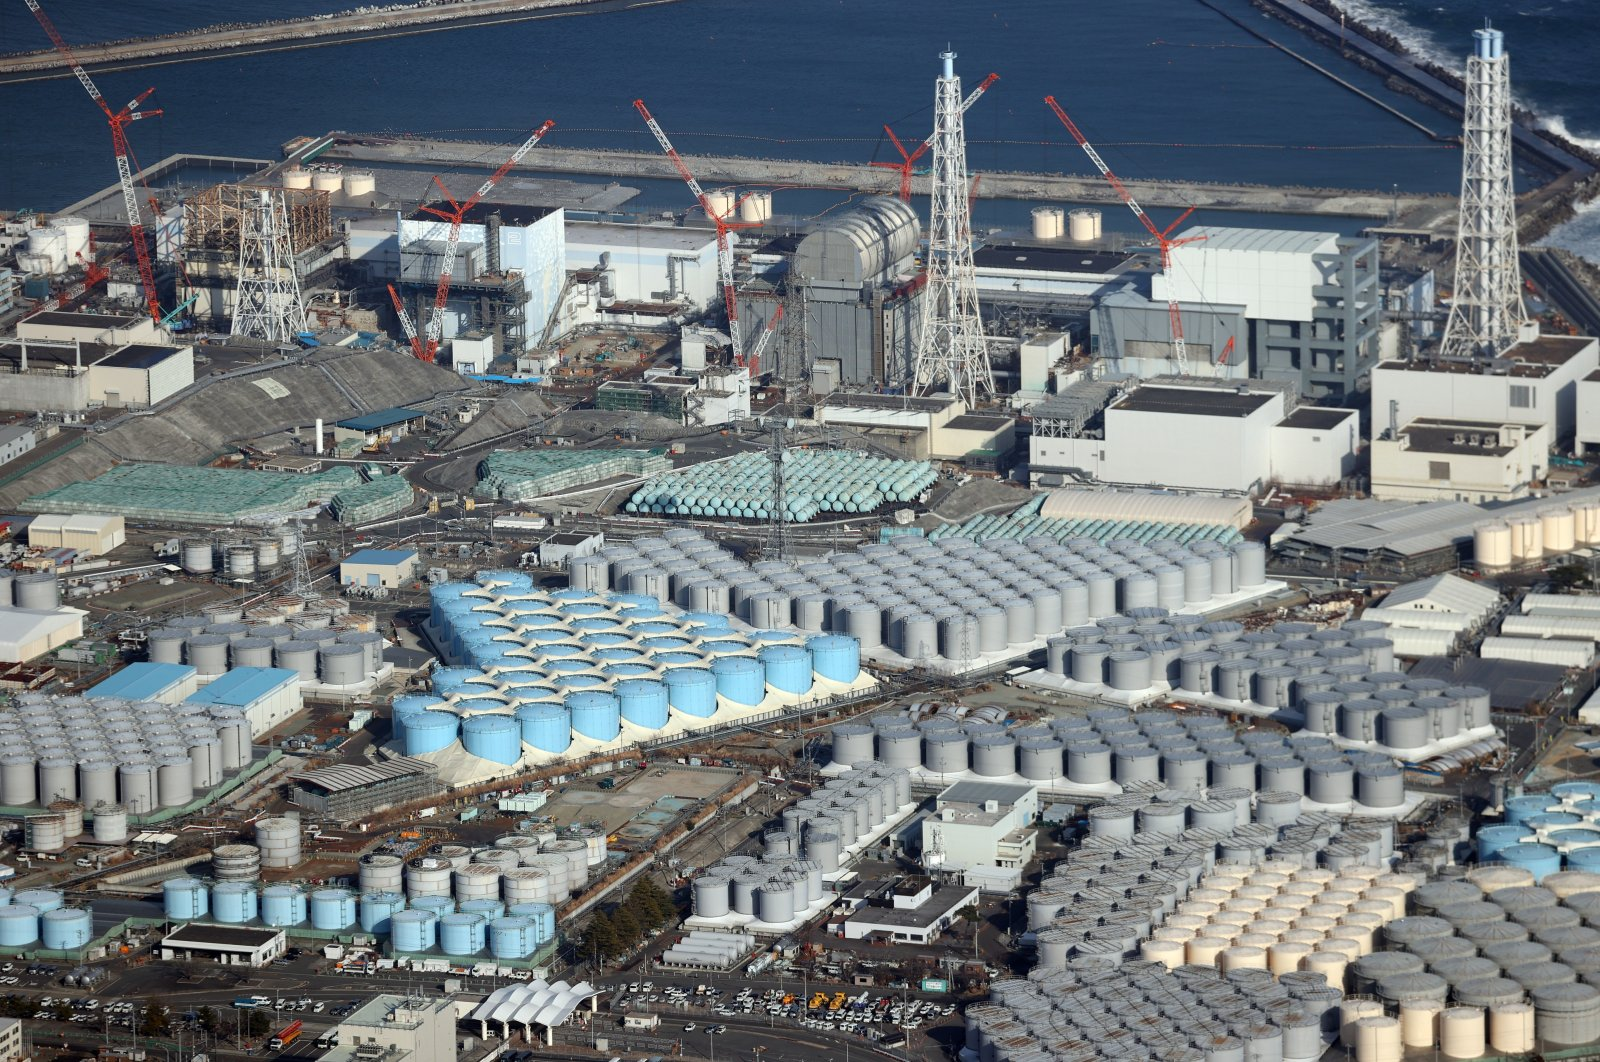 An aerial view shows tanks containing contaminated water and the Fukushima Daiichi nuclear power plant which suffered meltdowns on 11 March 2011, in Fukushima prefecture, northeastern Japan, Feb. 14, 2021. (EPA Photo)